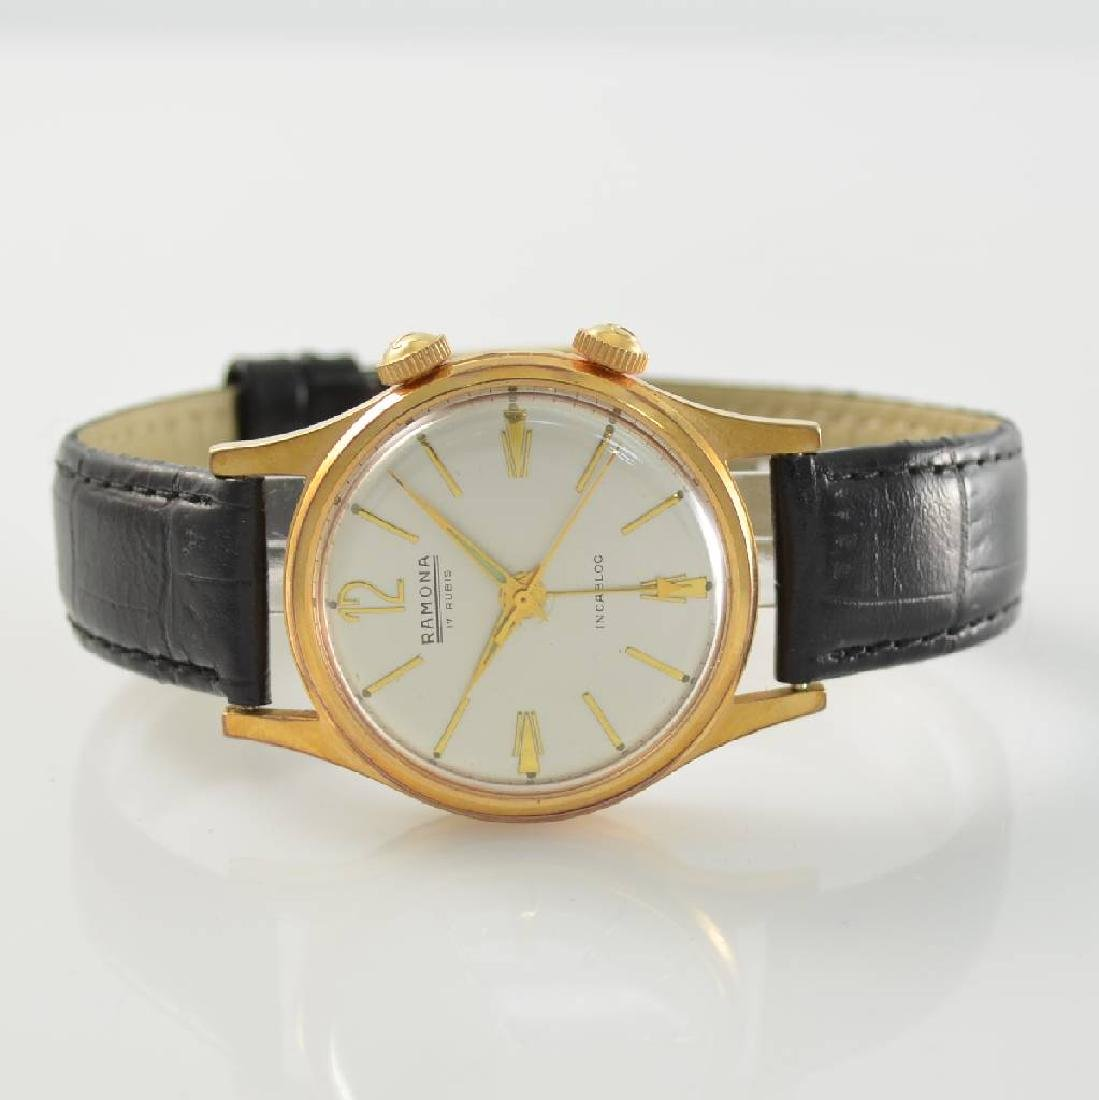 Set of 2 manual wound wristwatches